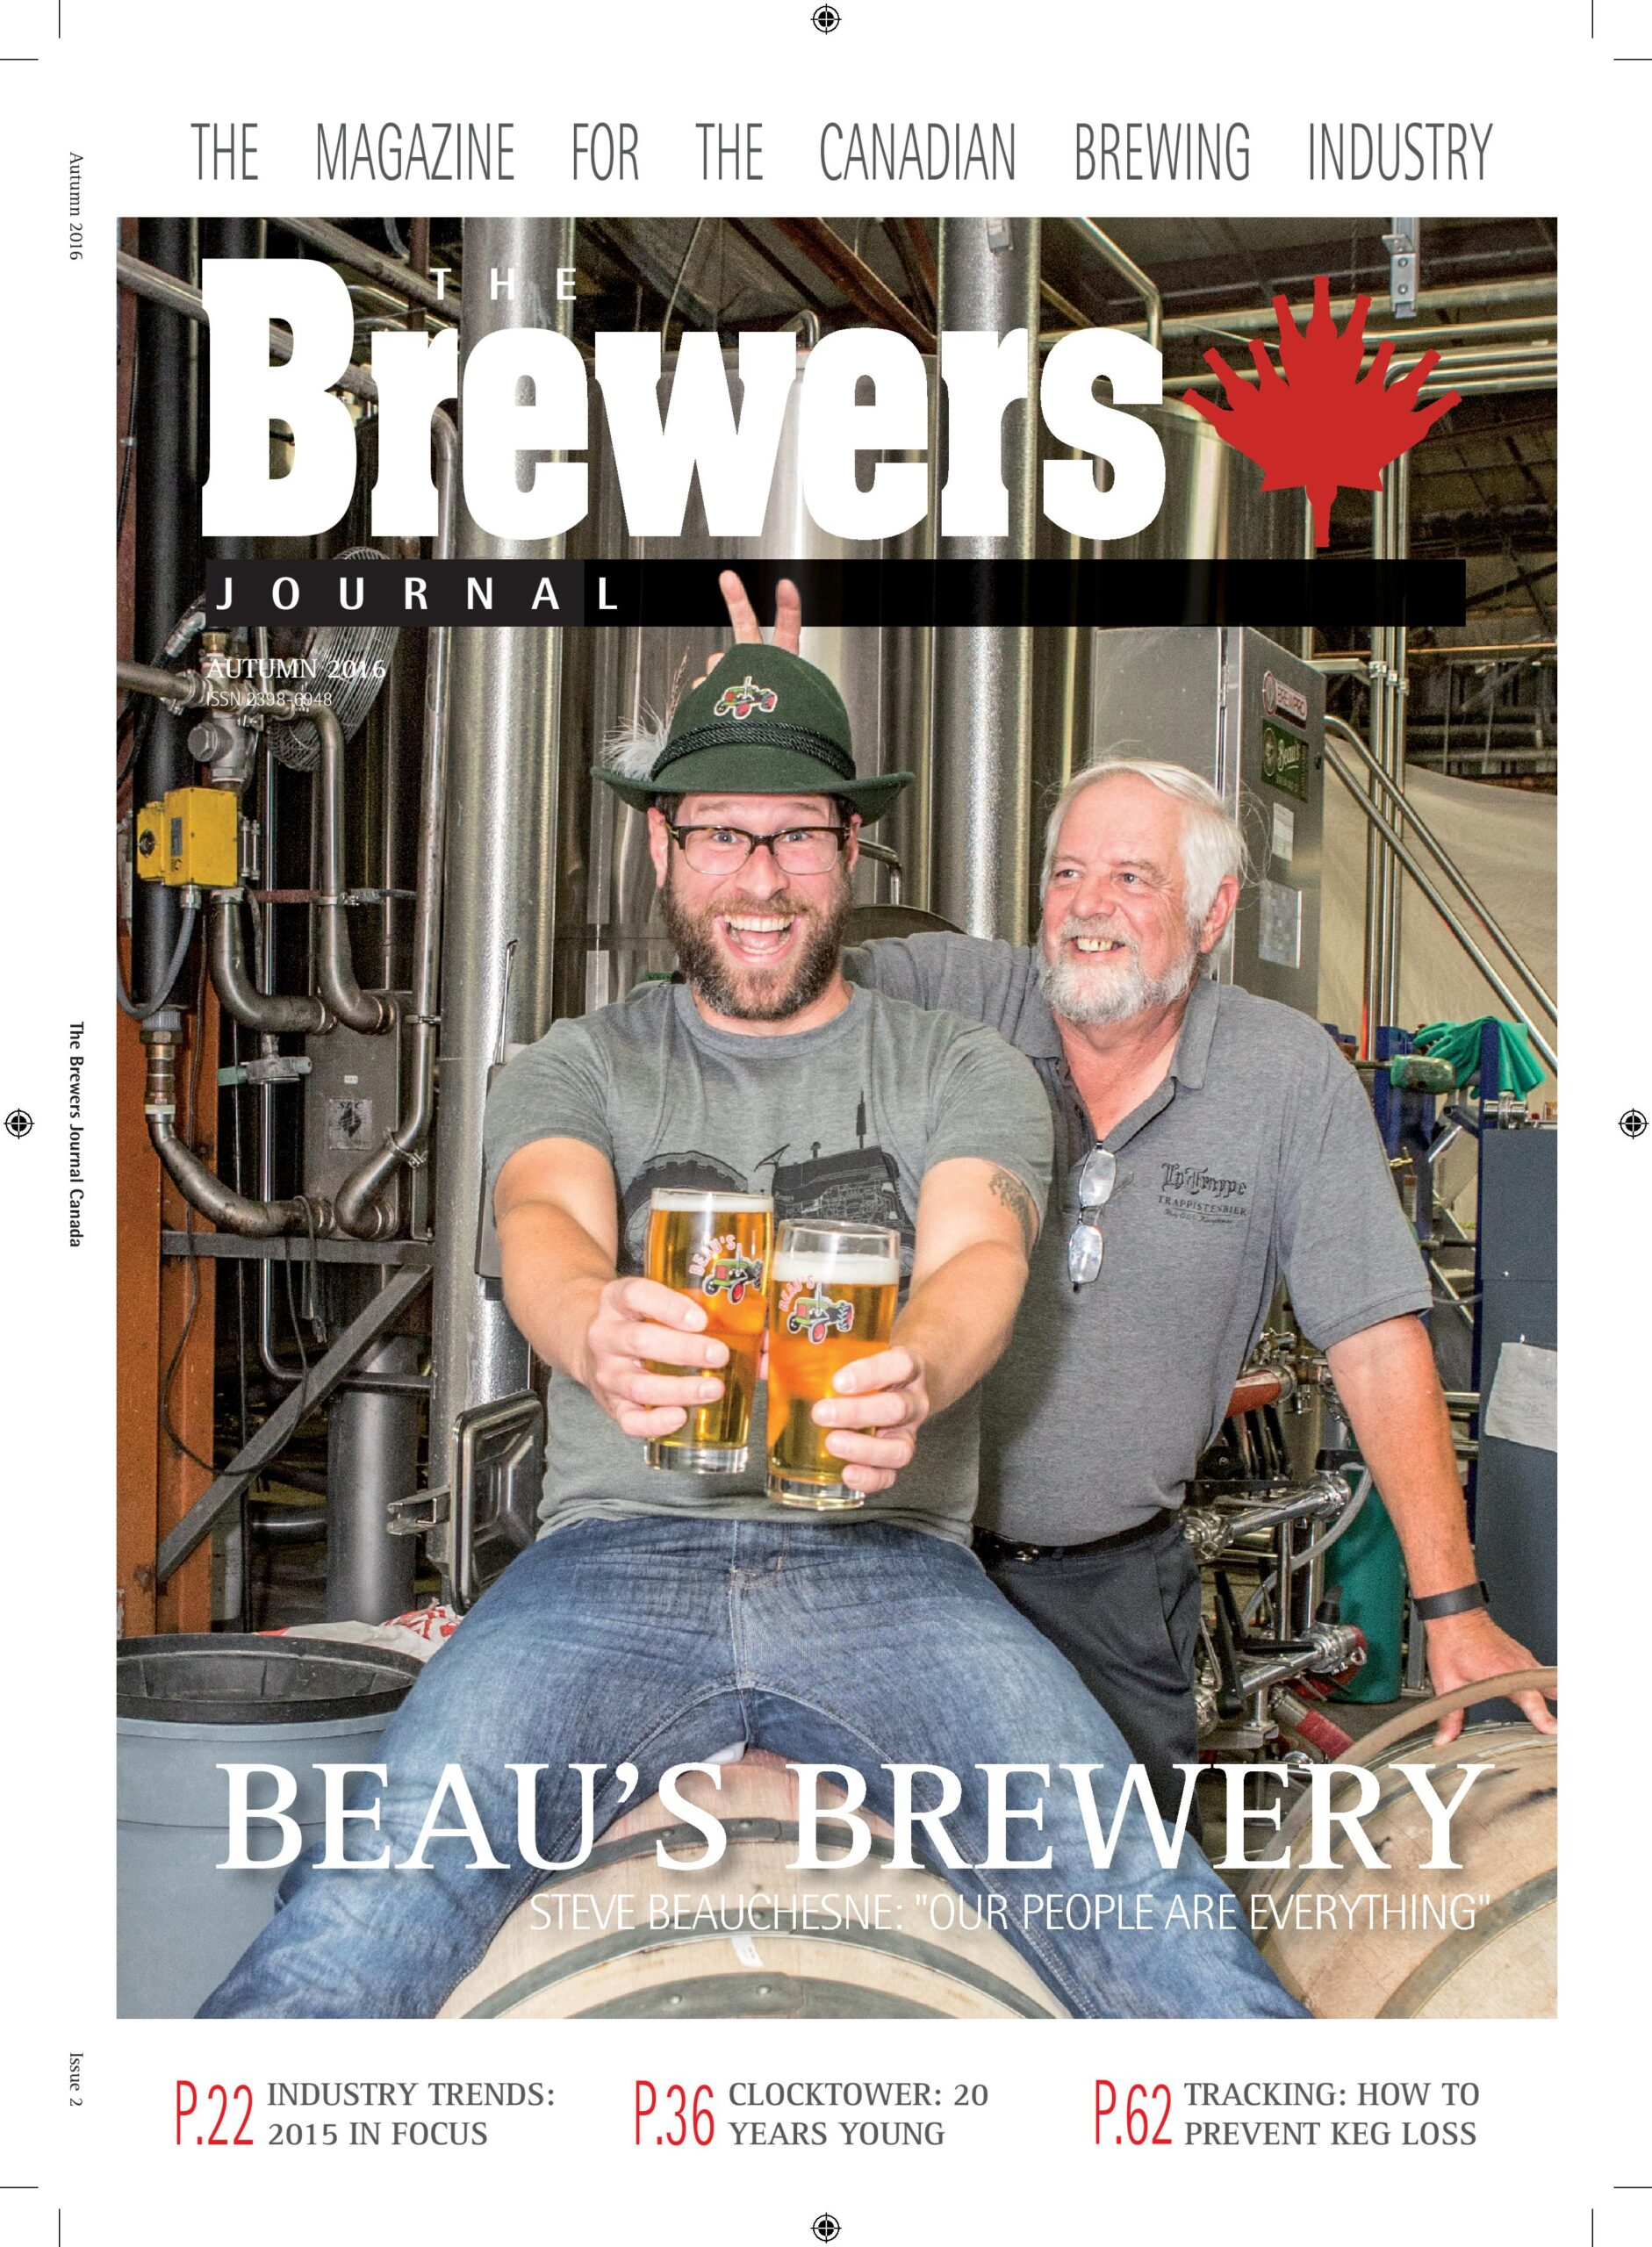 Nameless-Productions© Brewers-Journal-Canada-Fall 2016